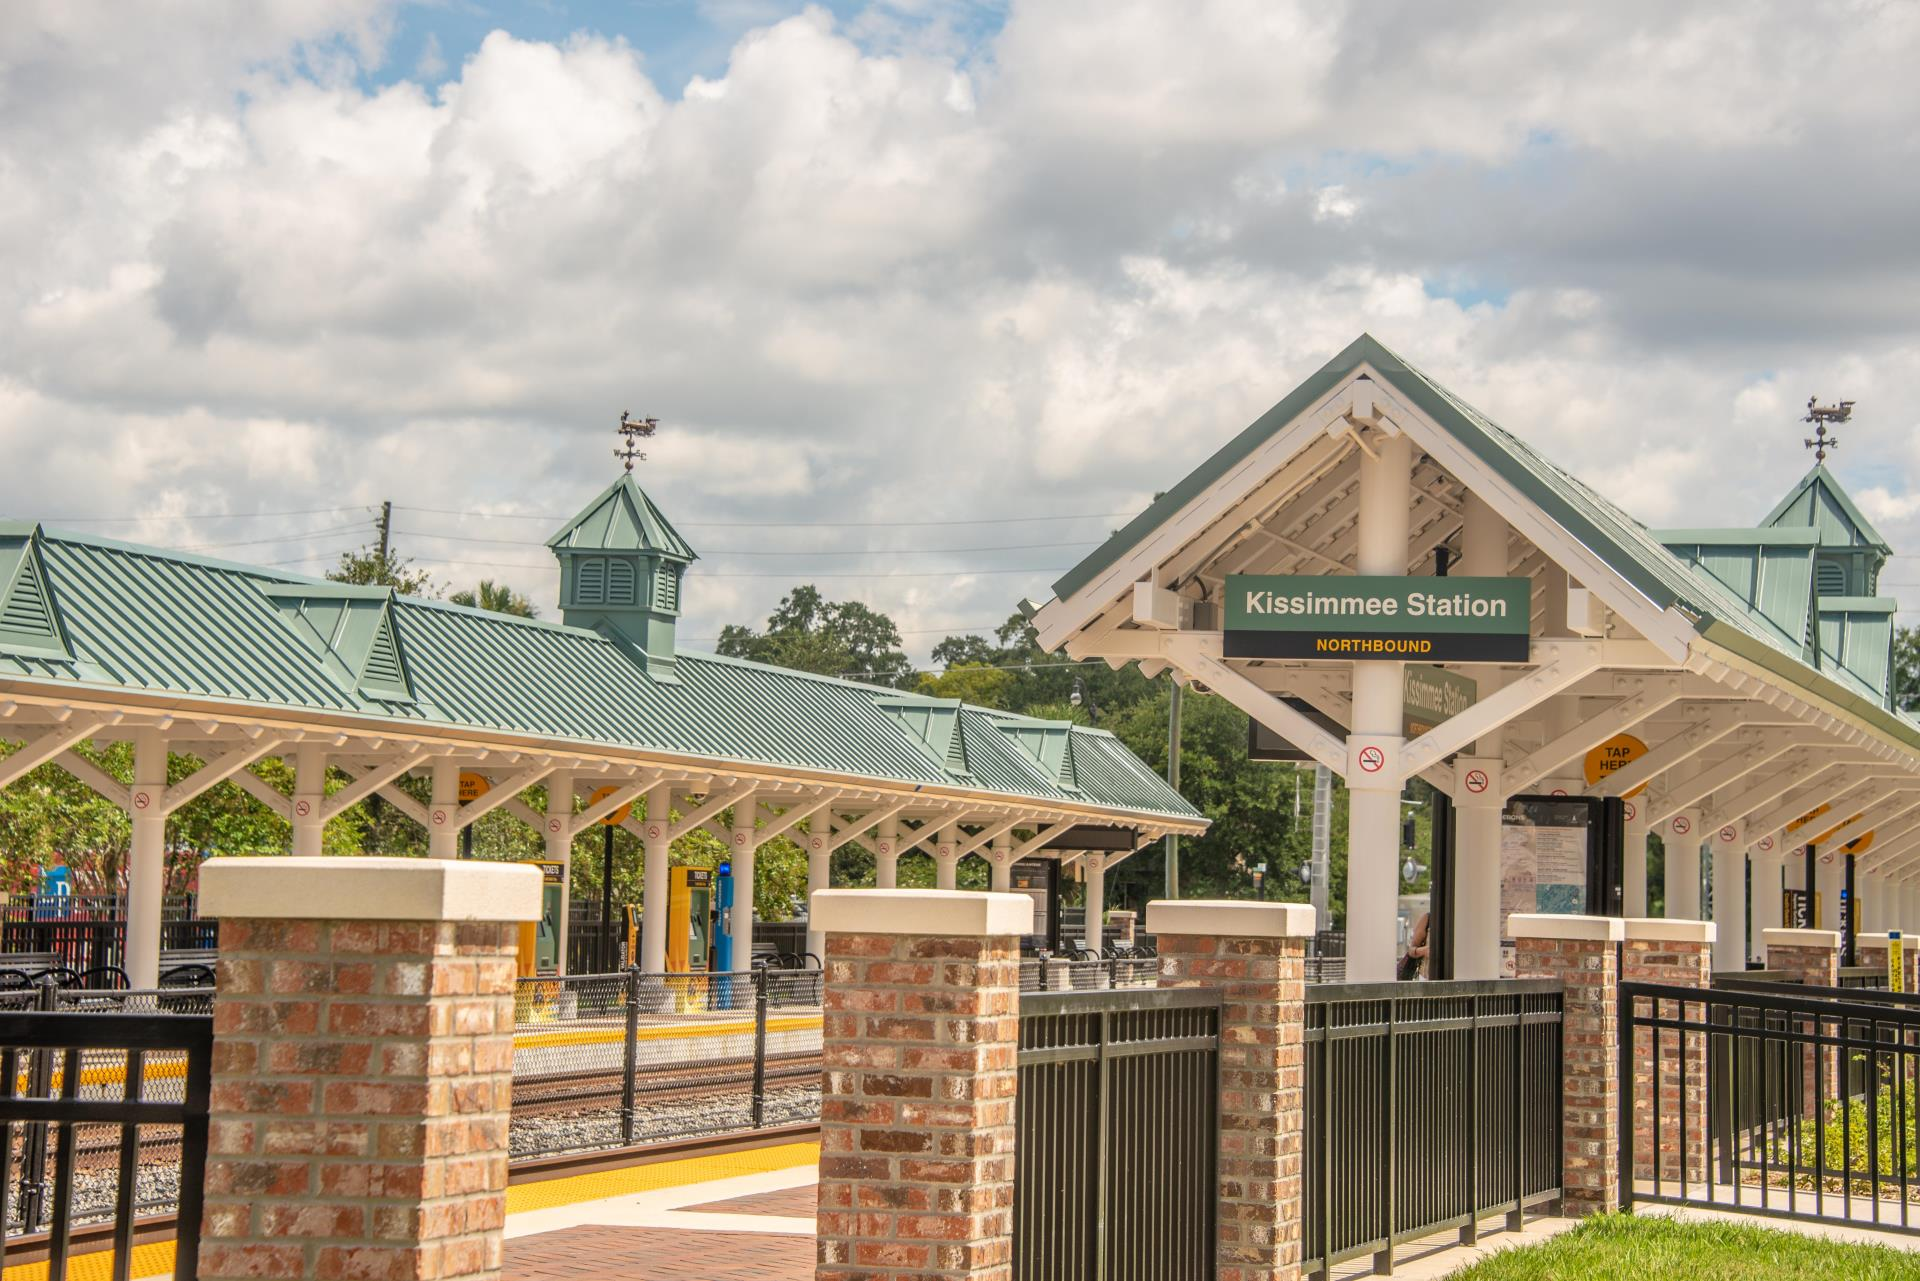 SunRail Station brick entrance kissimmee downtown